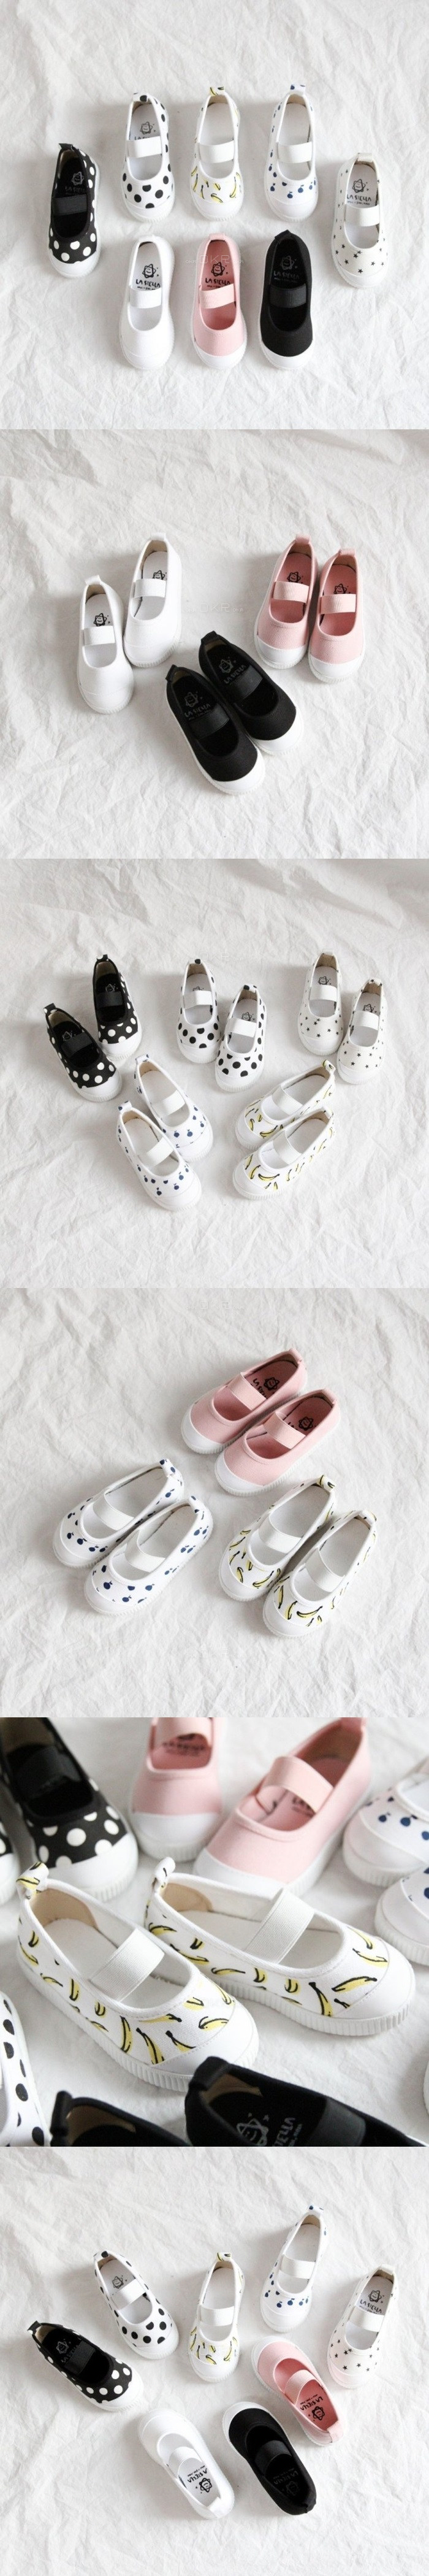 LA STELLA - Korean Children Fashion - #Kfashion4kids - Basic Slip-on